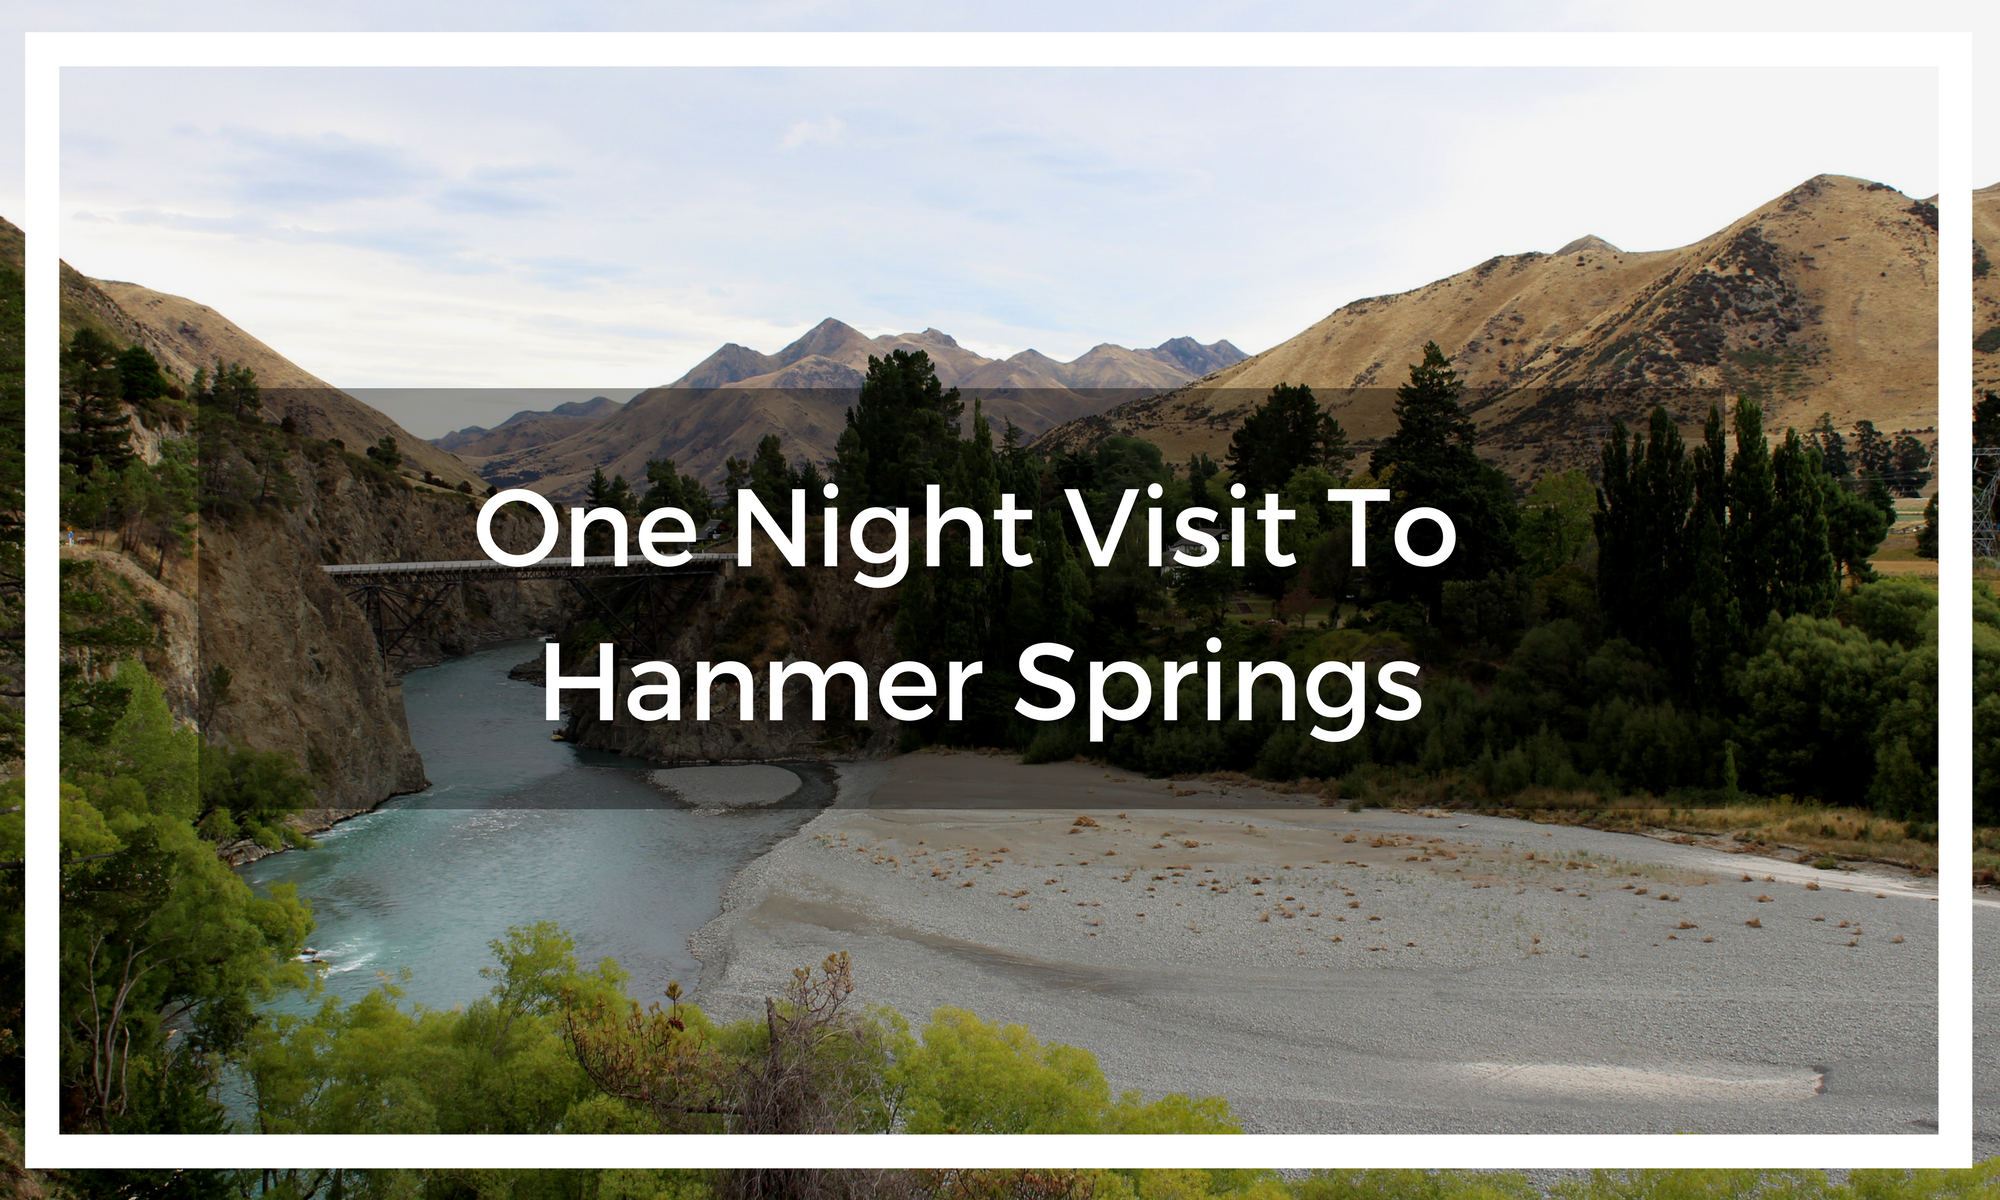 Title text overlay of the mountains, river, and bridge of Hanmer Springs in New Zealand